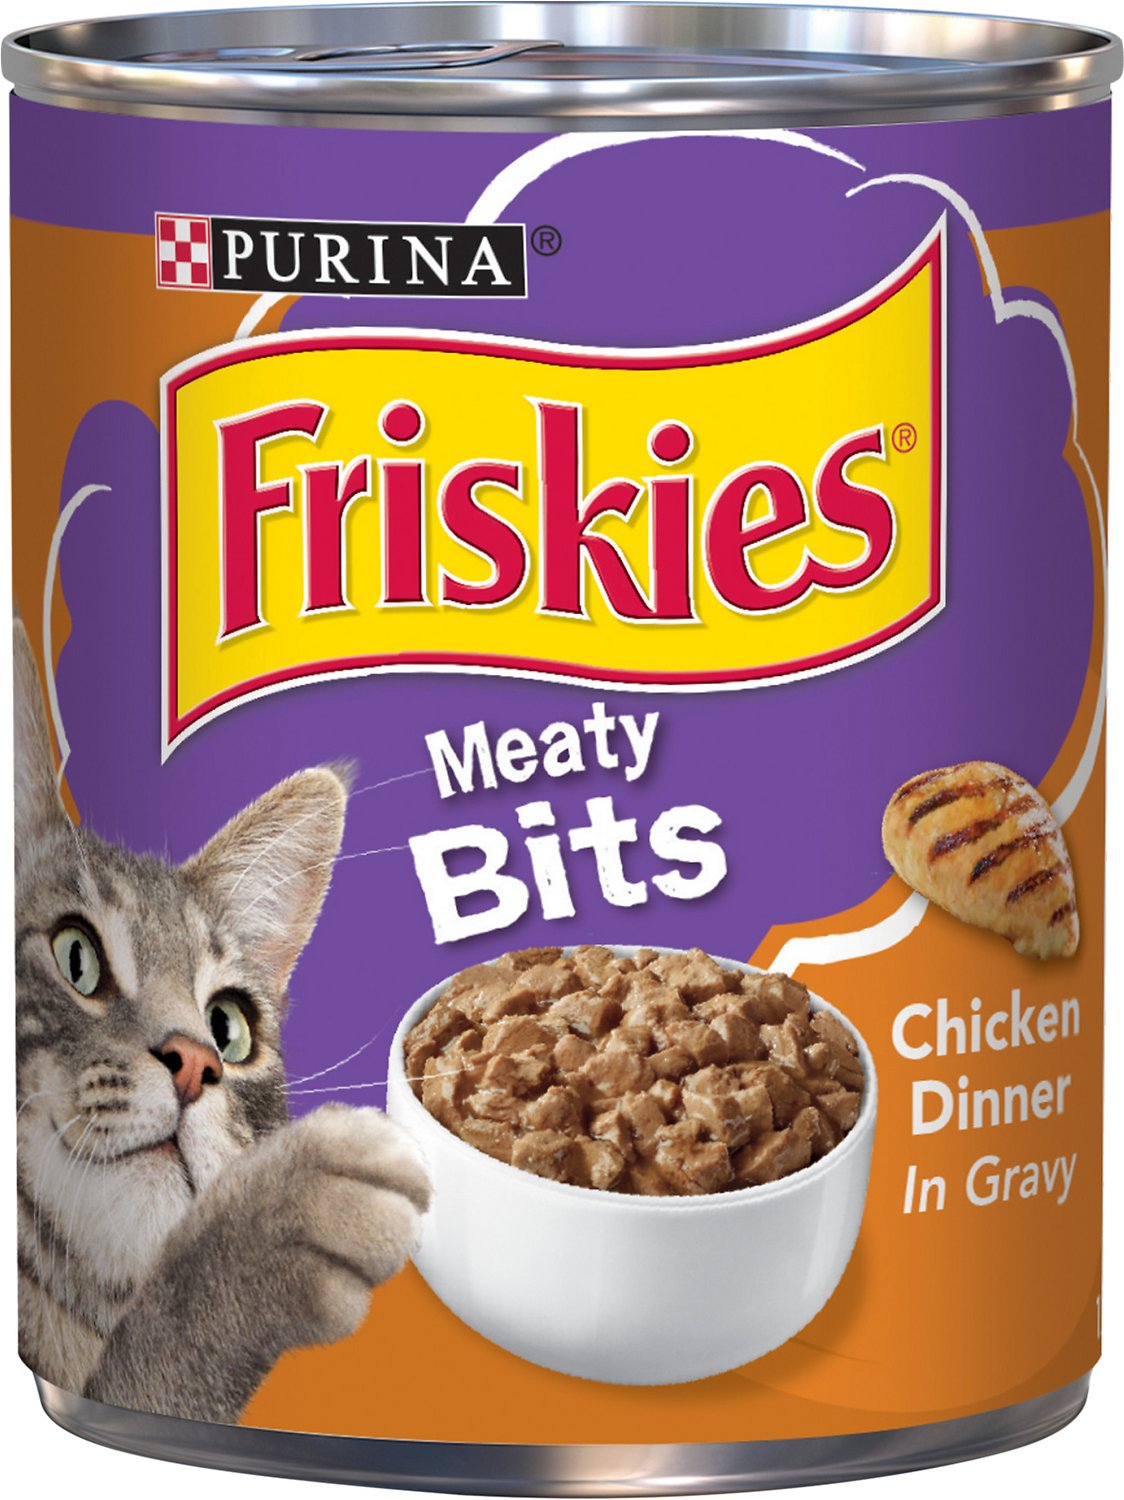 Friskies Canned Cat Food Nutritional Information